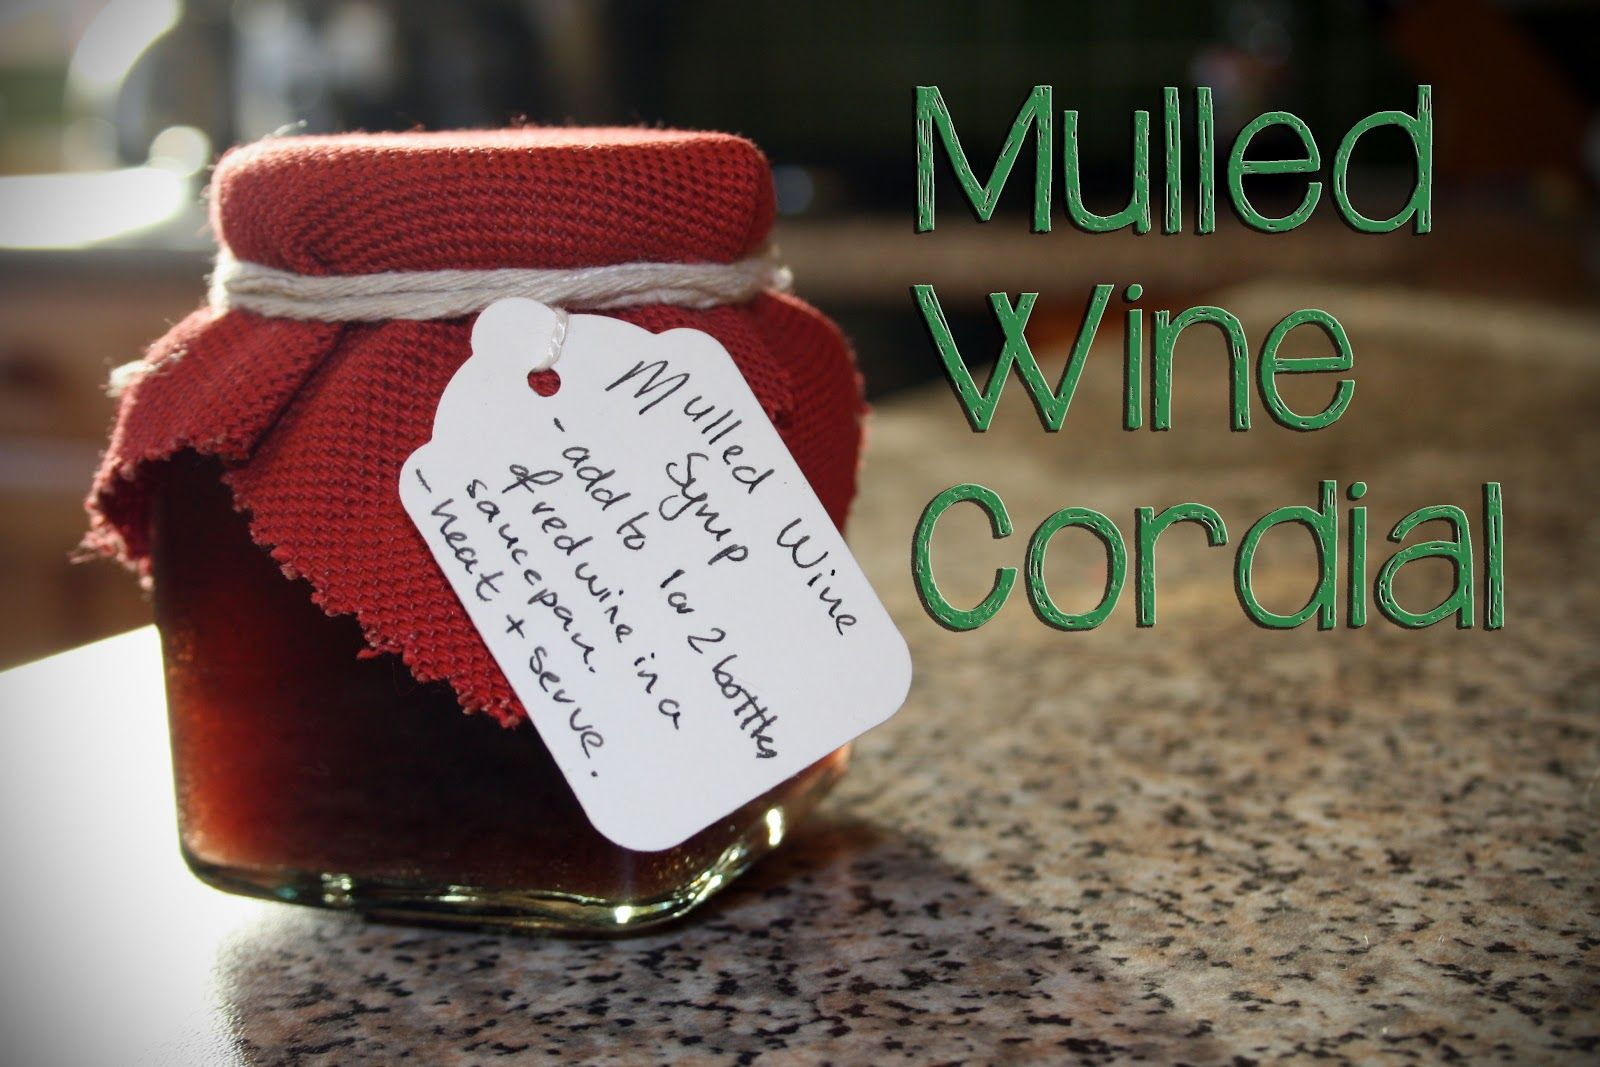 How To Make Mulled Wine Cordial Amanda Collins Blogspot Com Mulled Wine Cordial Recipe Mulled